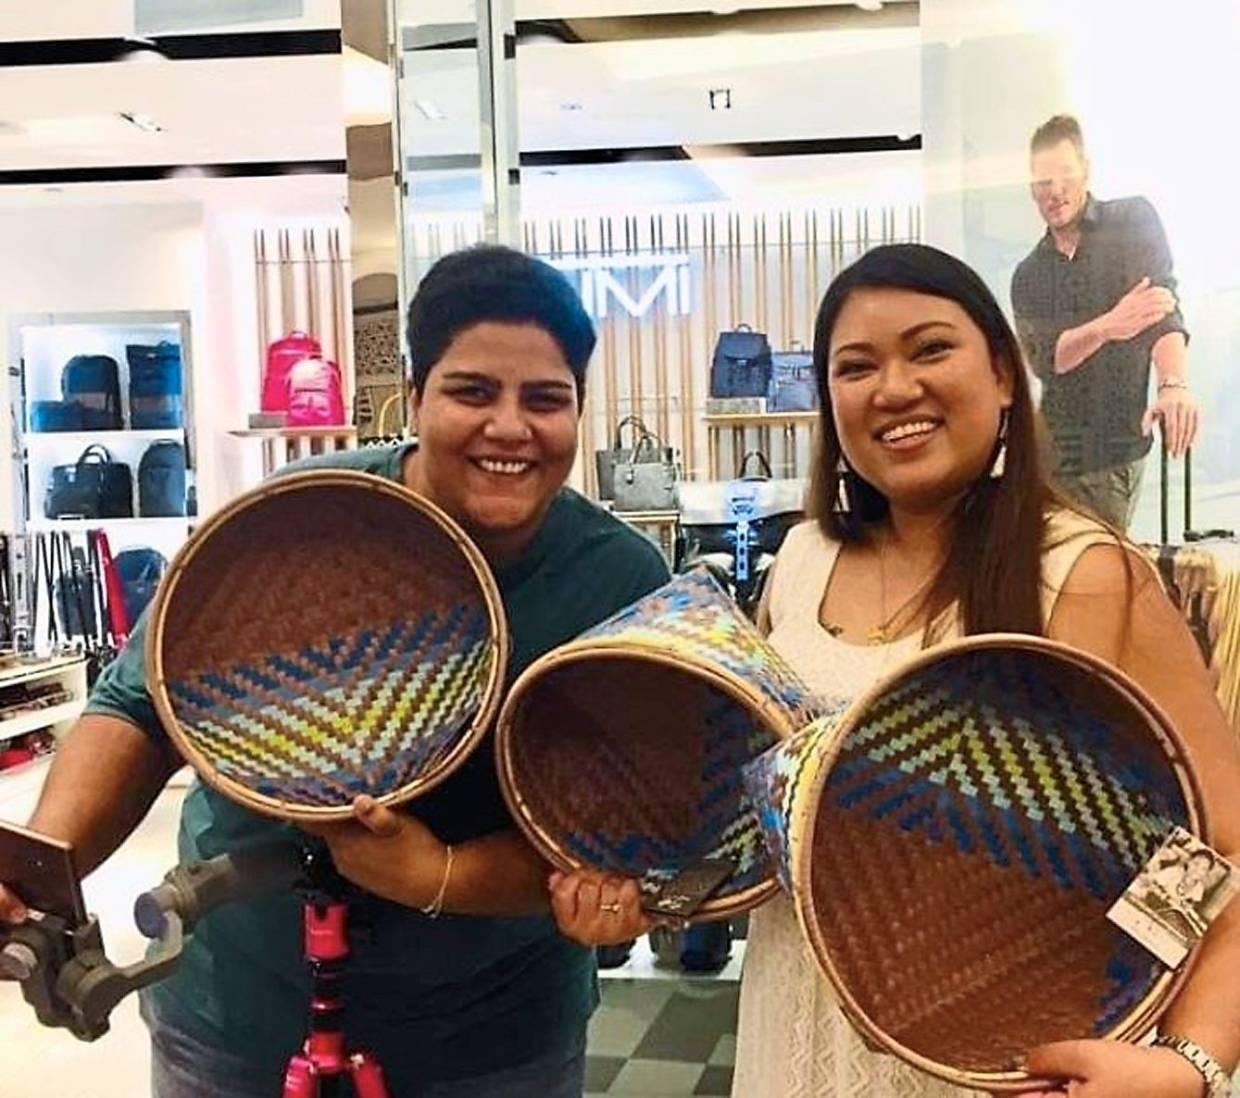 Primila (right) and Makers & Co event co-organiser Paramjit Kaur hope more people will move towards sustainable living to care for Mother Earth. Photo: Primila Ganash